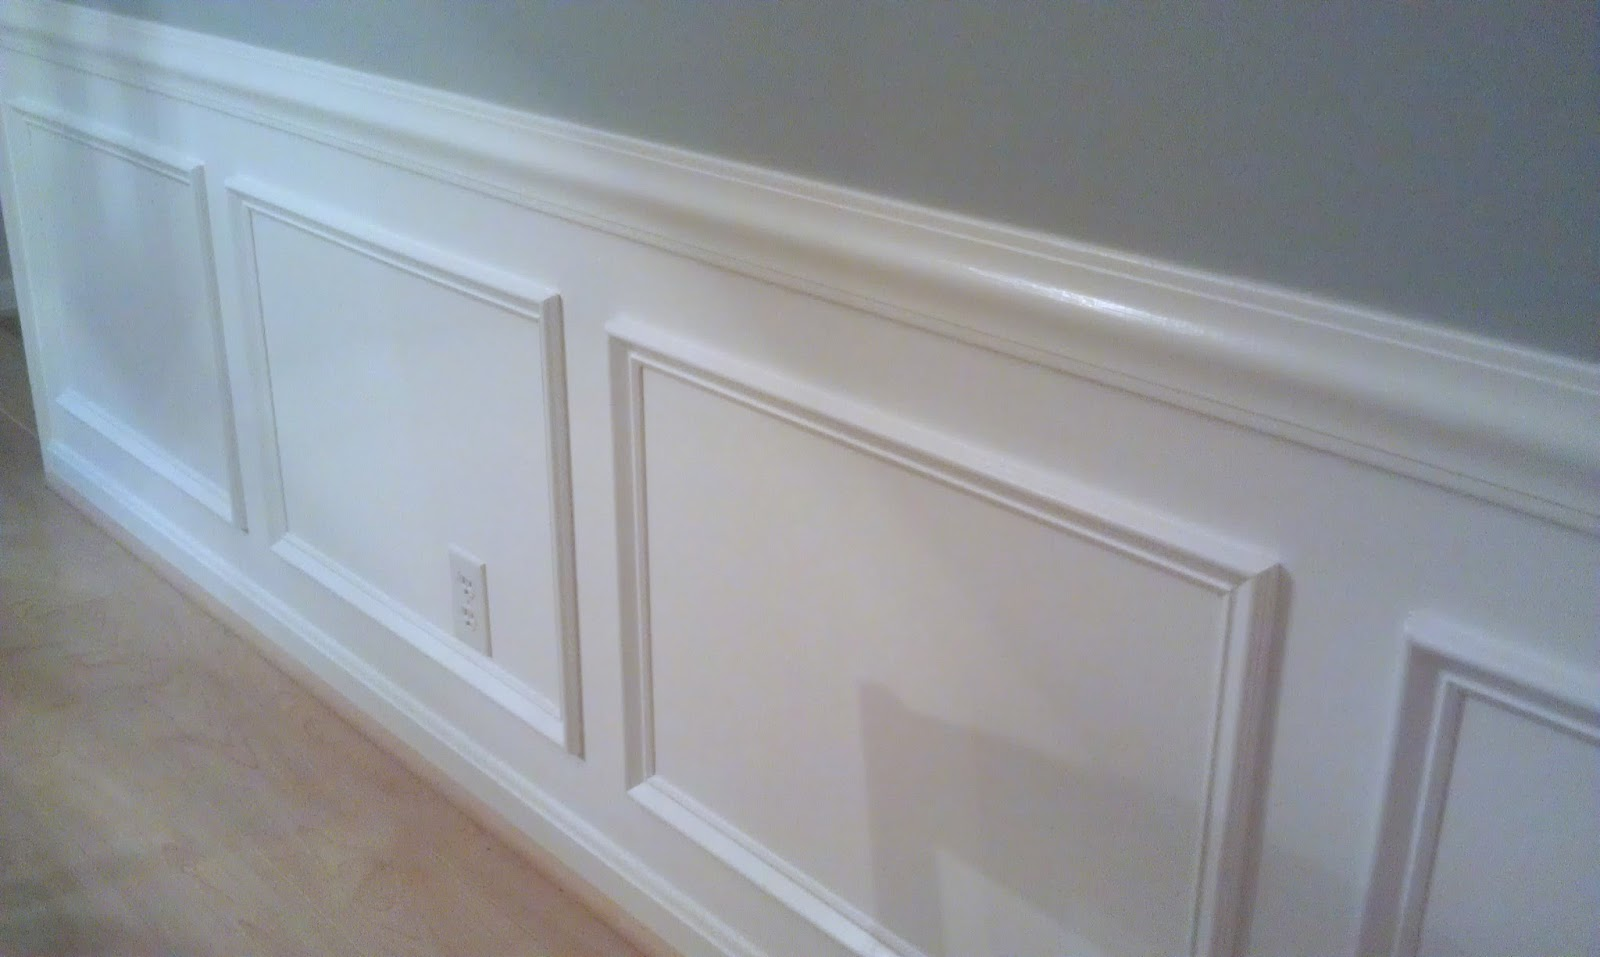 Homemade By Holman Picture Frame Moldings and a Kitchen